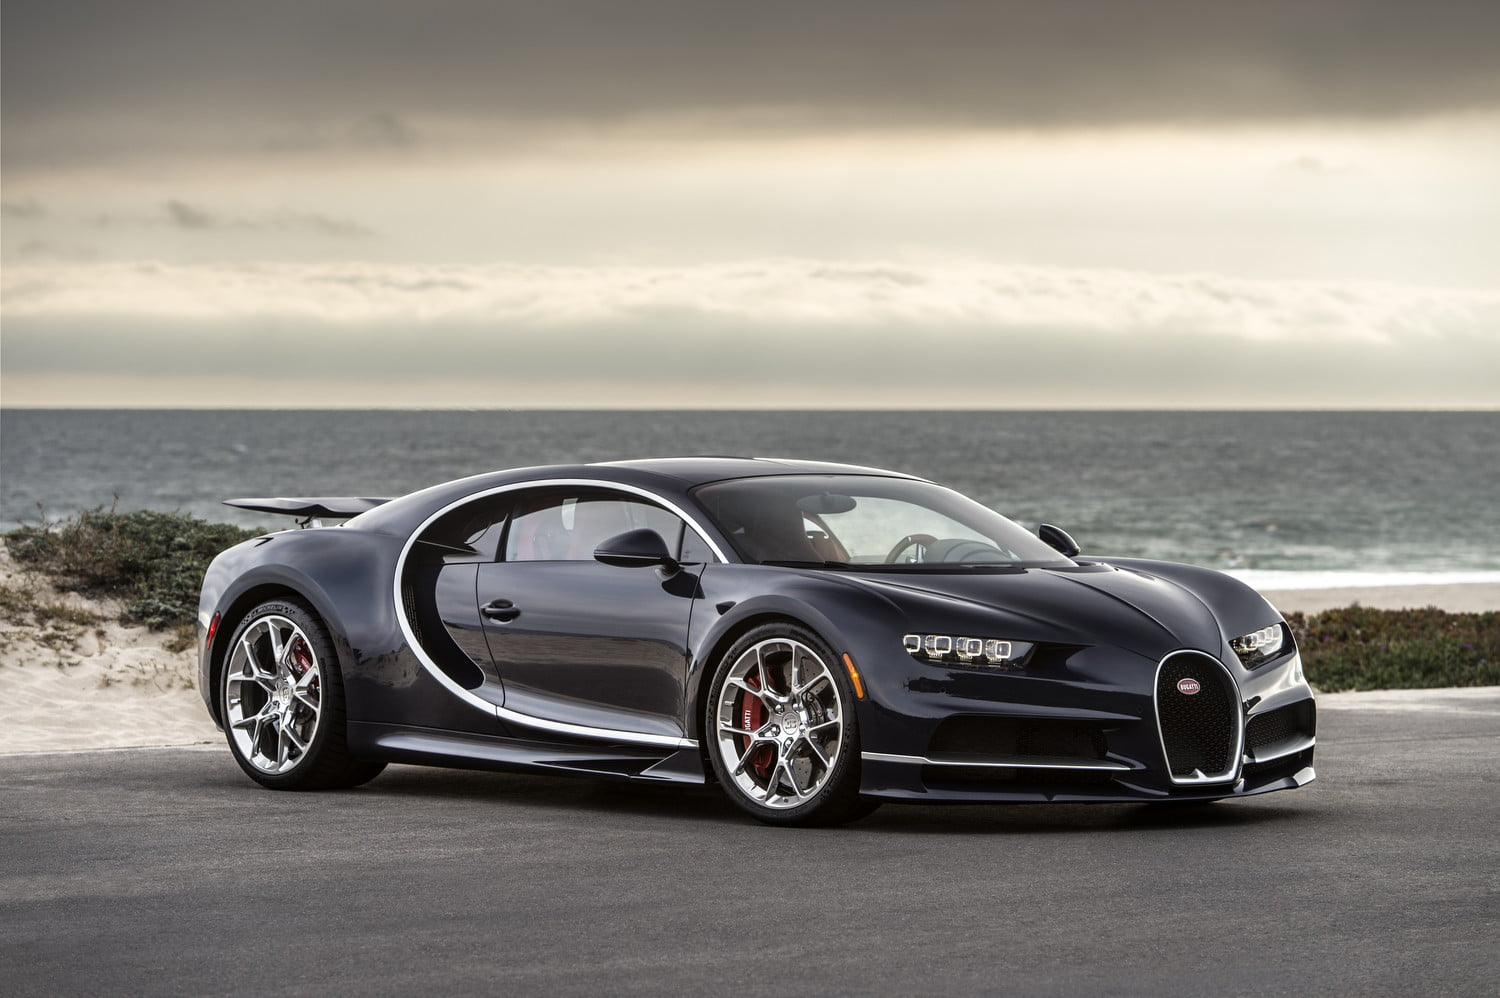 Bugatti Remotely Monitors Chiron Supercars With Racing-Style